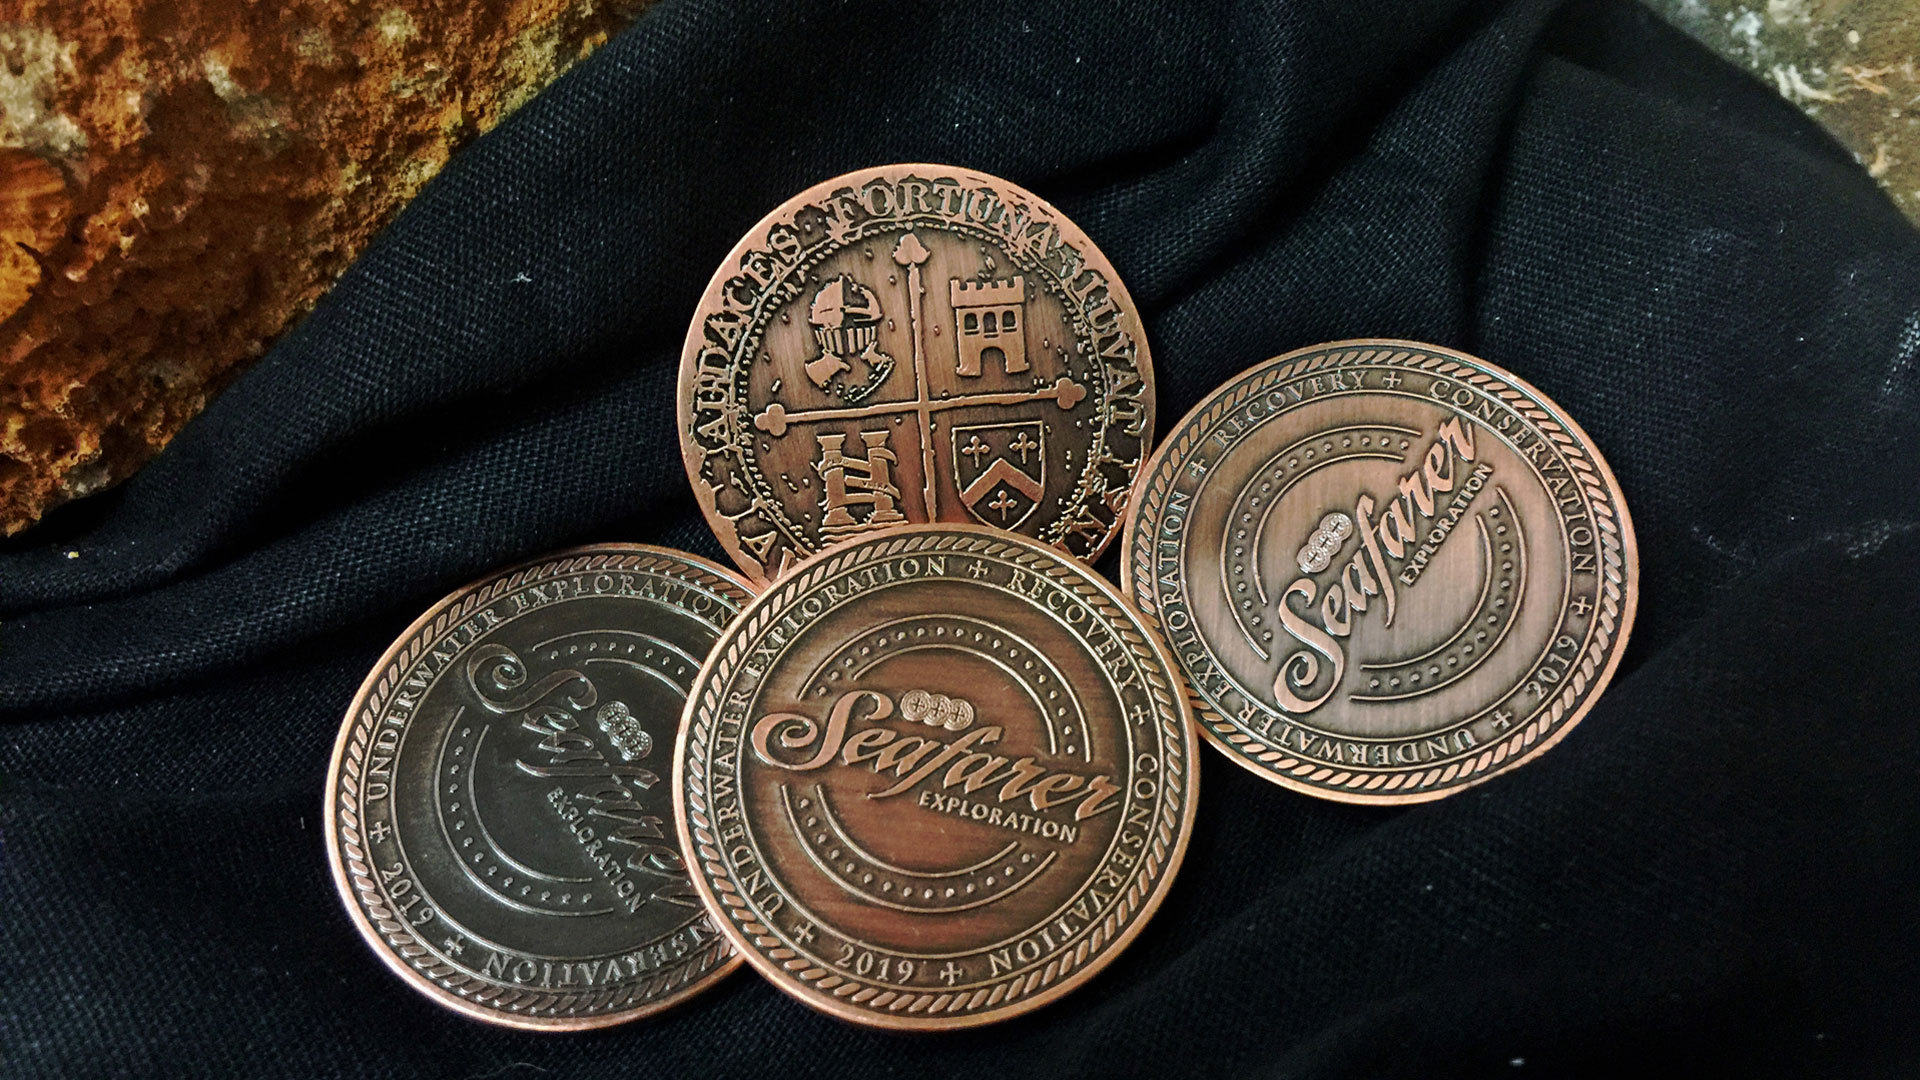 Seafarer-Exploration-SeaSearcher-Hydro-Probe-Coins-2